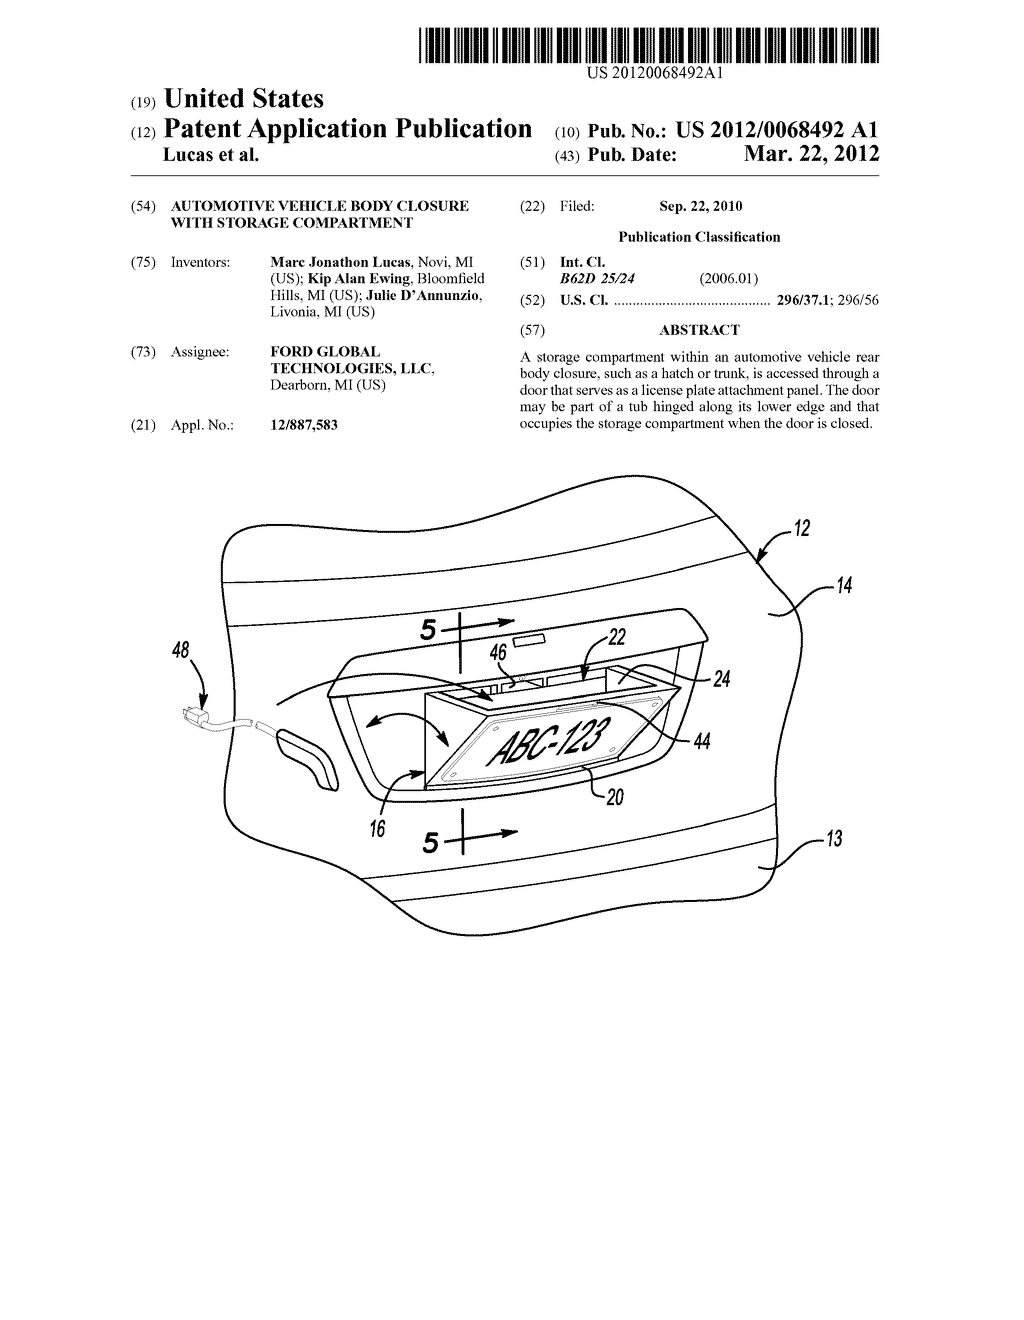 Automotive Vehicle Body Closure with Storage Compartment - diagram, schematic, and image 01